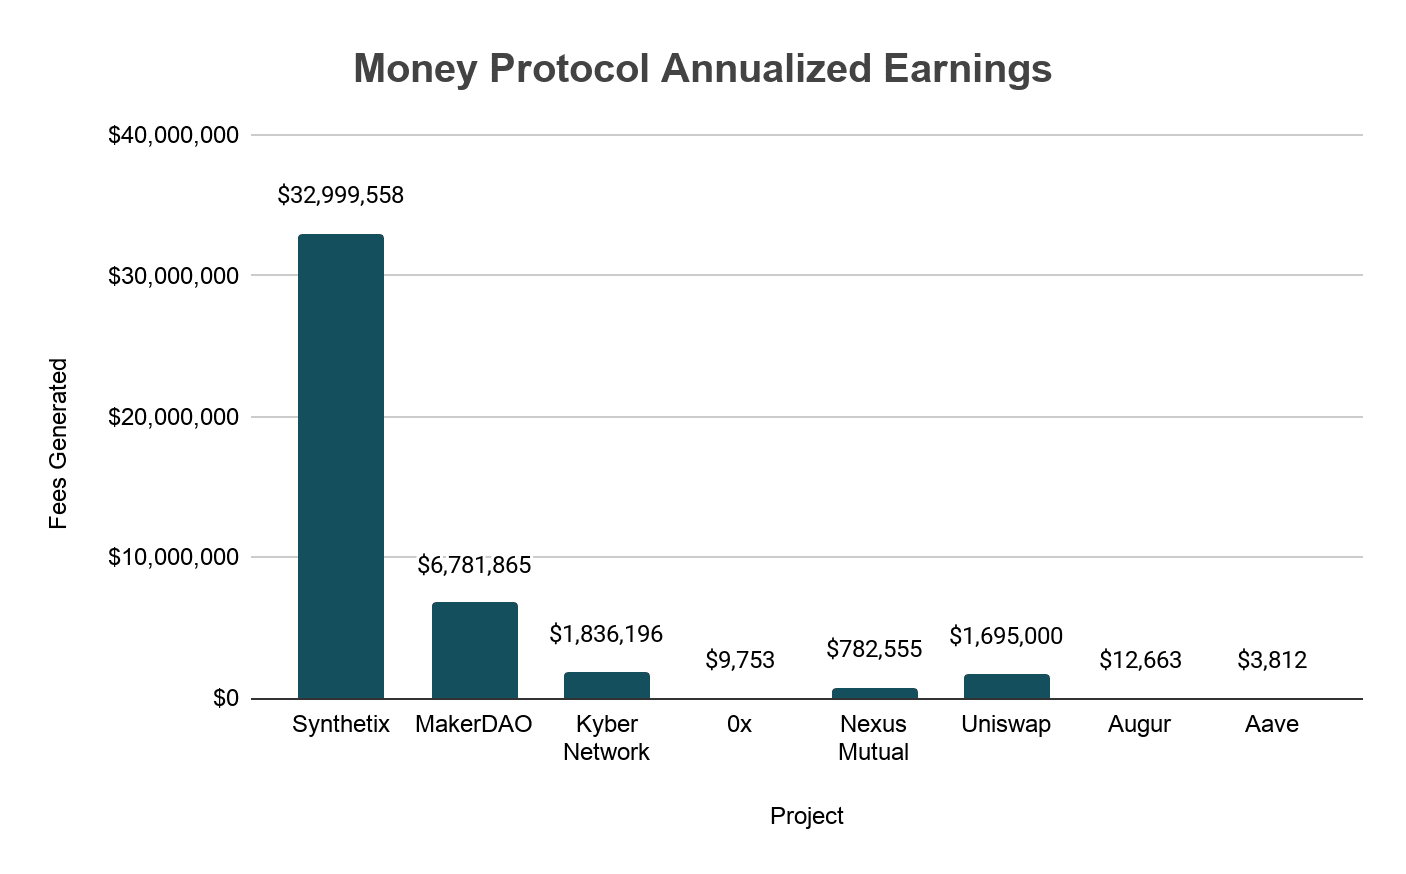 Money Protocol Annualized Earnings